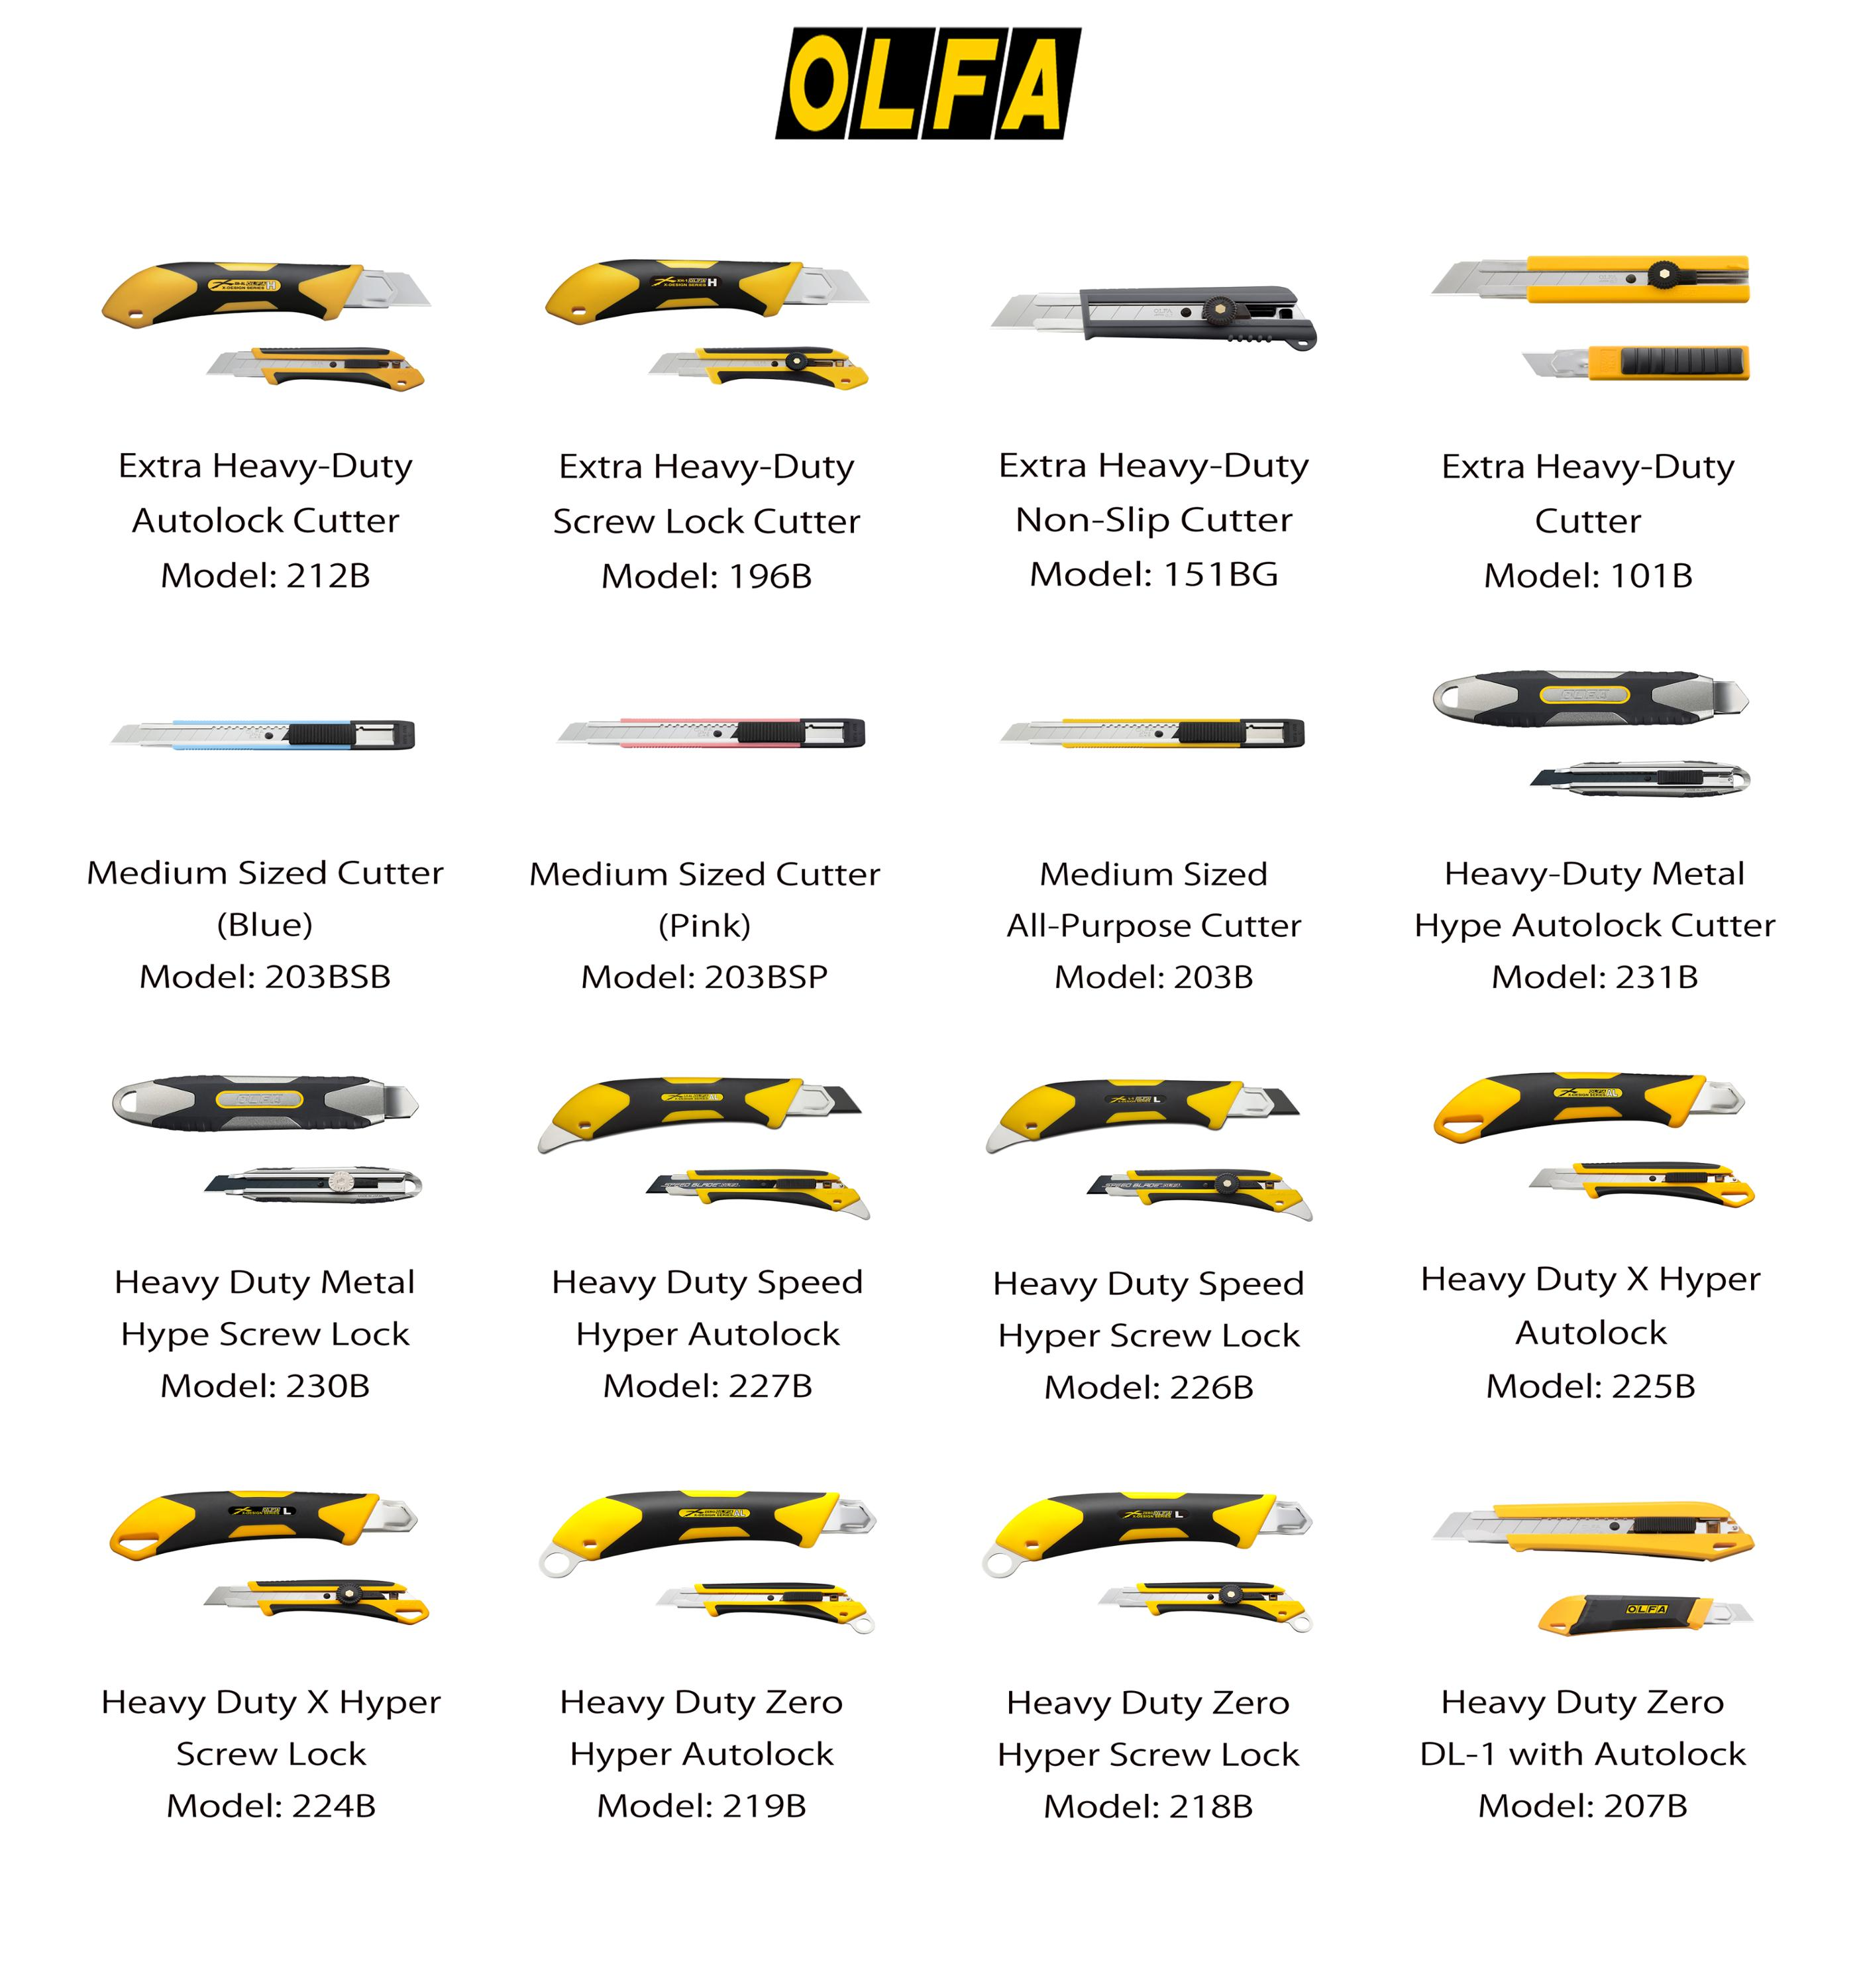 Olfa Cutting Tools, Blades and Utility Knife. Made in Japan